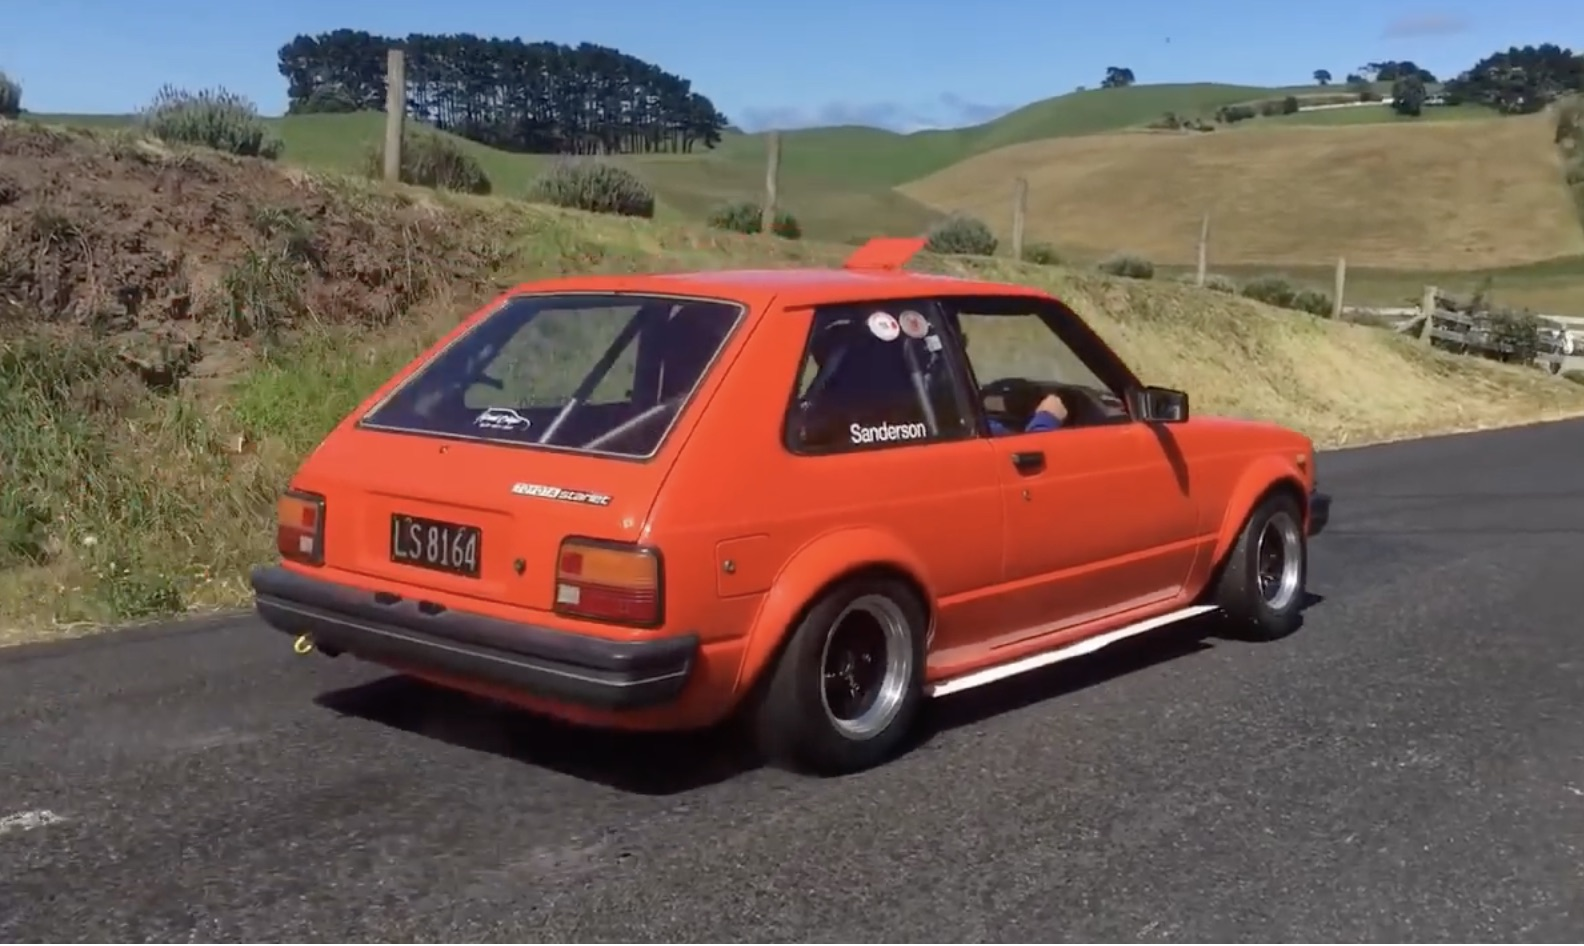 Hearing Is Overrated Anyways: Enjoy This Hayabusa-Swapped Toyota Starlet's Run Up A Hillclimb!